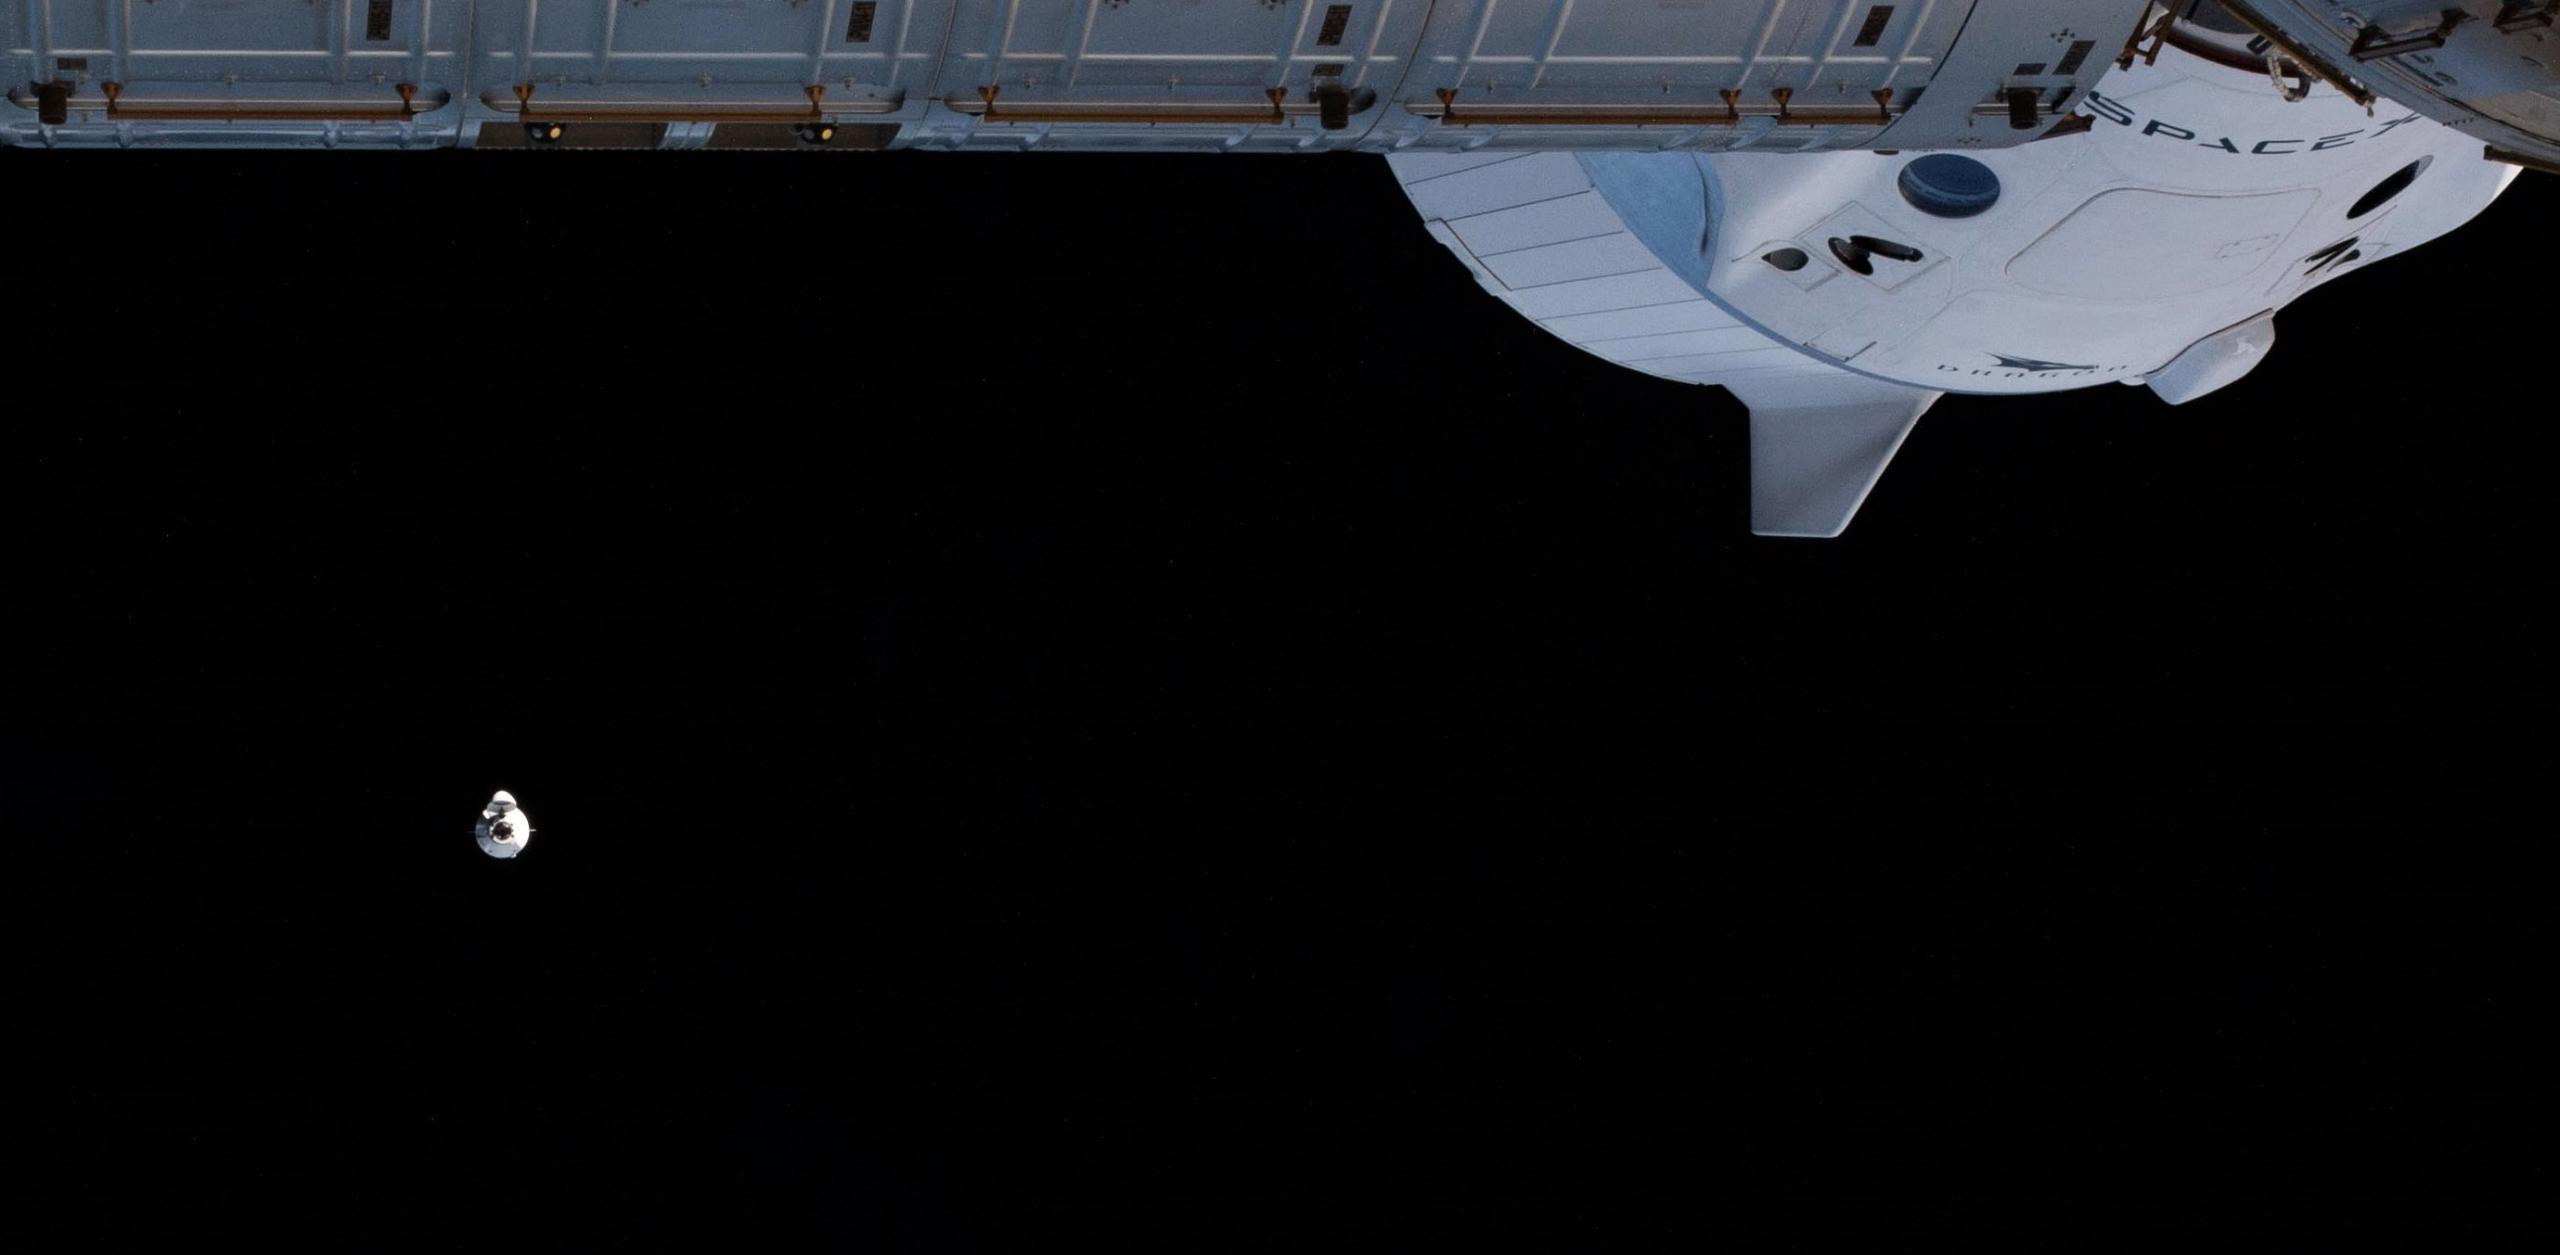 CRS-21 Cargo Dragon 2 120720 (NASA) ISS arrival 1 crop (c)